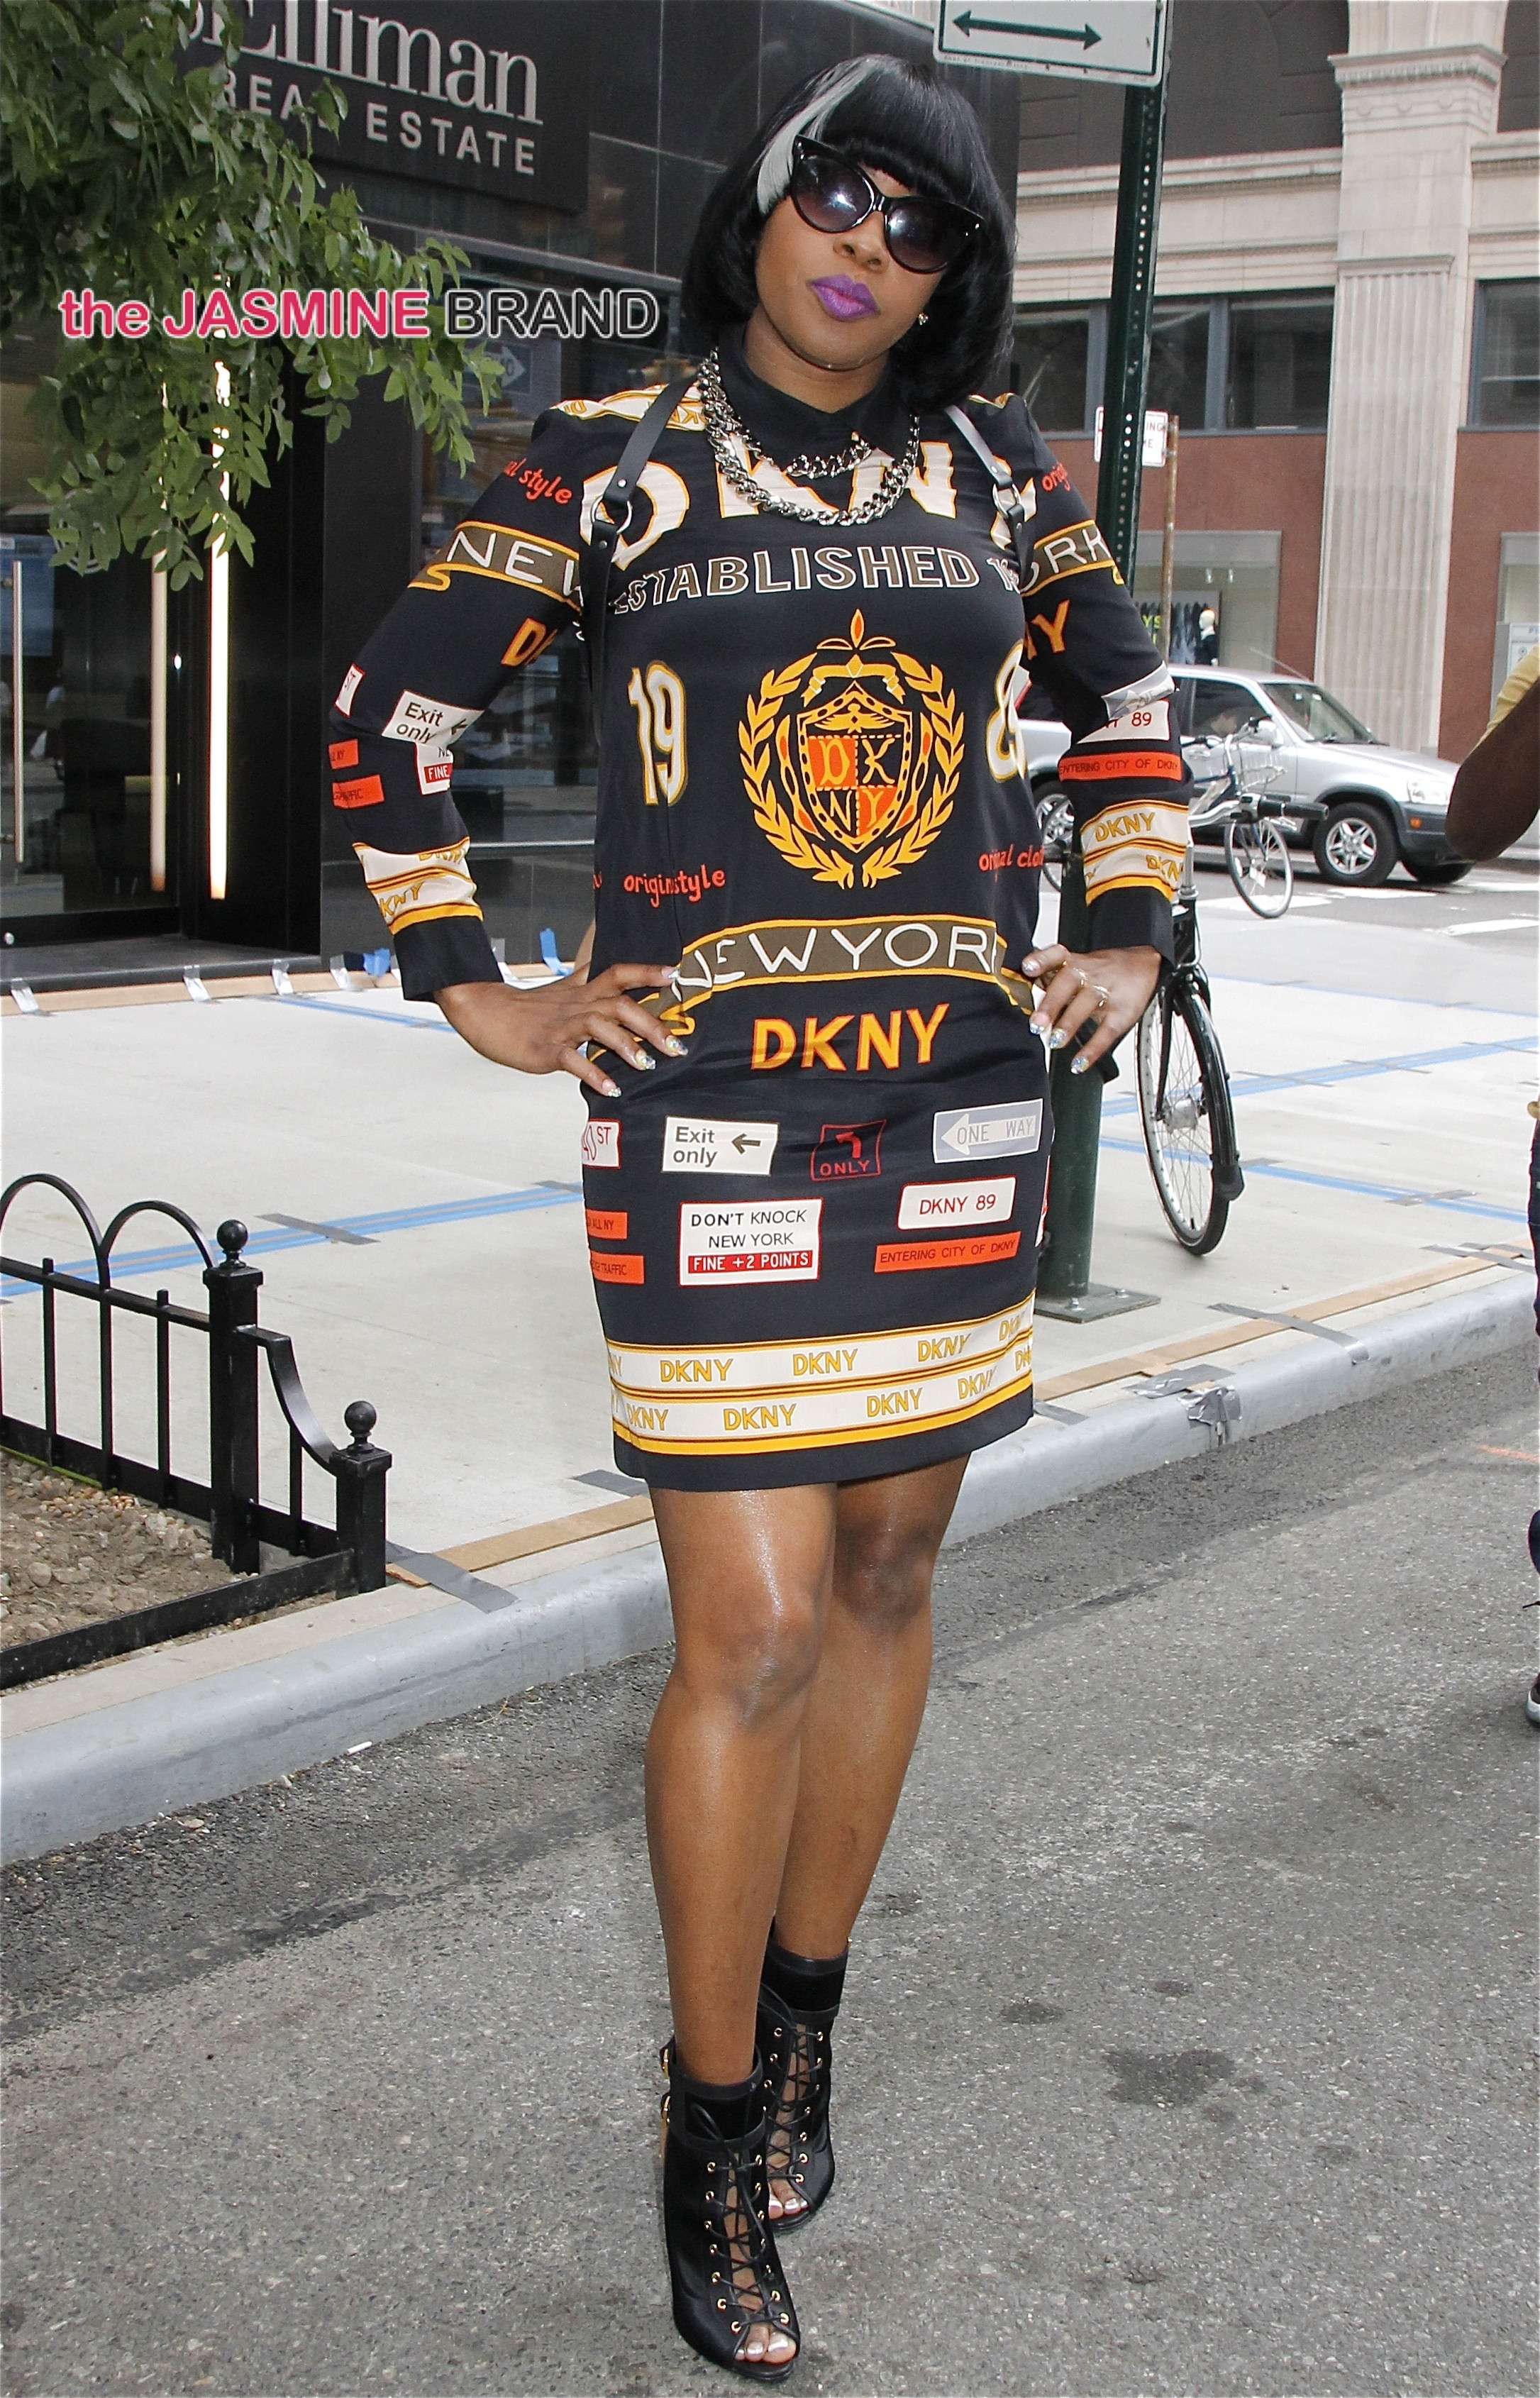 Wearing a DKNY dress and a short bob hairdo, rapper Remy Ma spotted in NYC's East Village